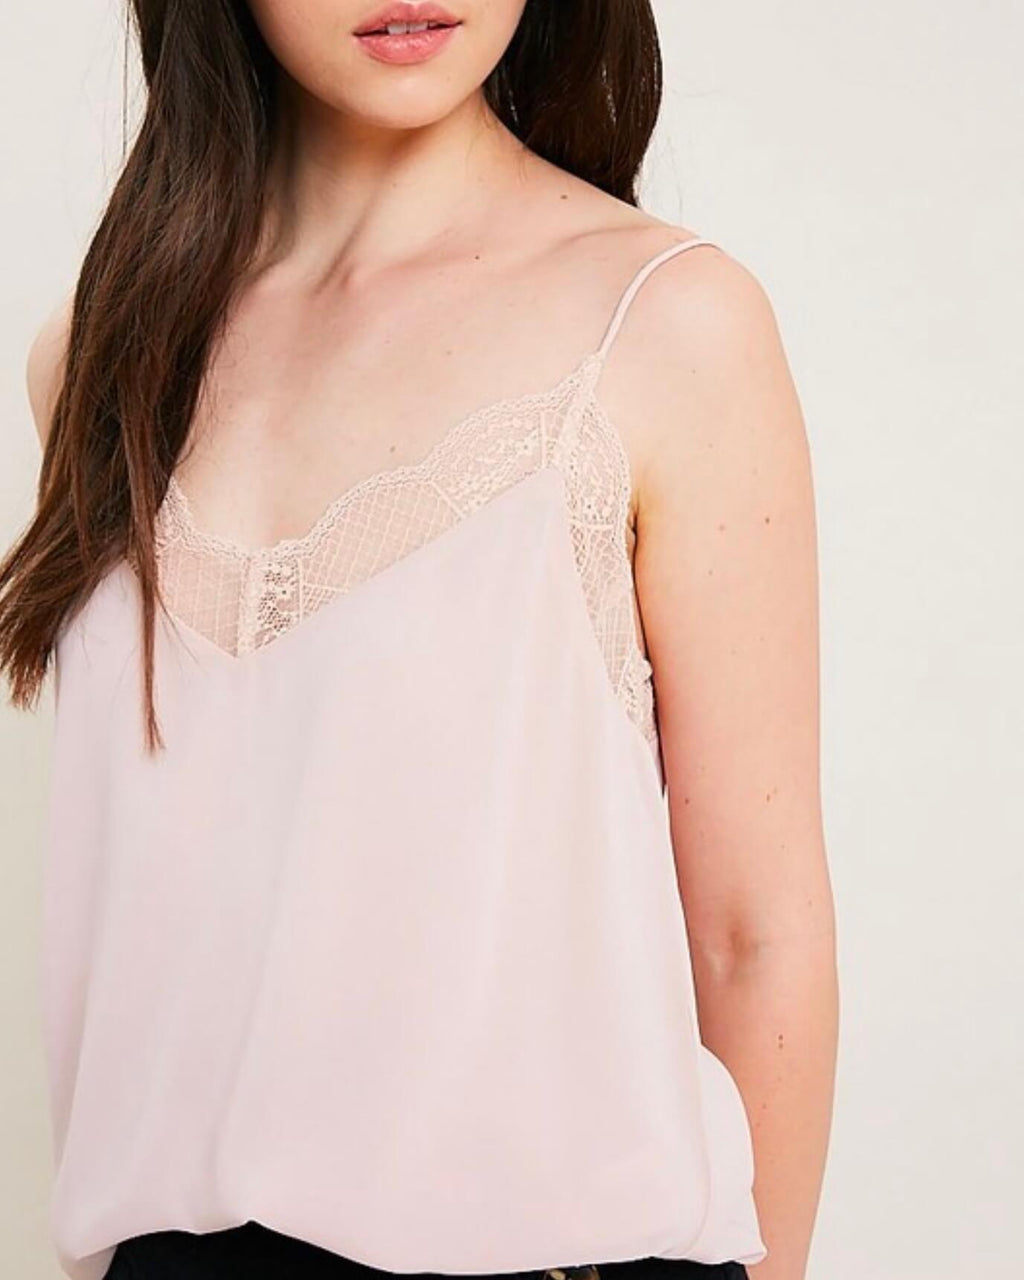 V-Neck Sleeveless Lace Trimmed Camisole Top in Blush